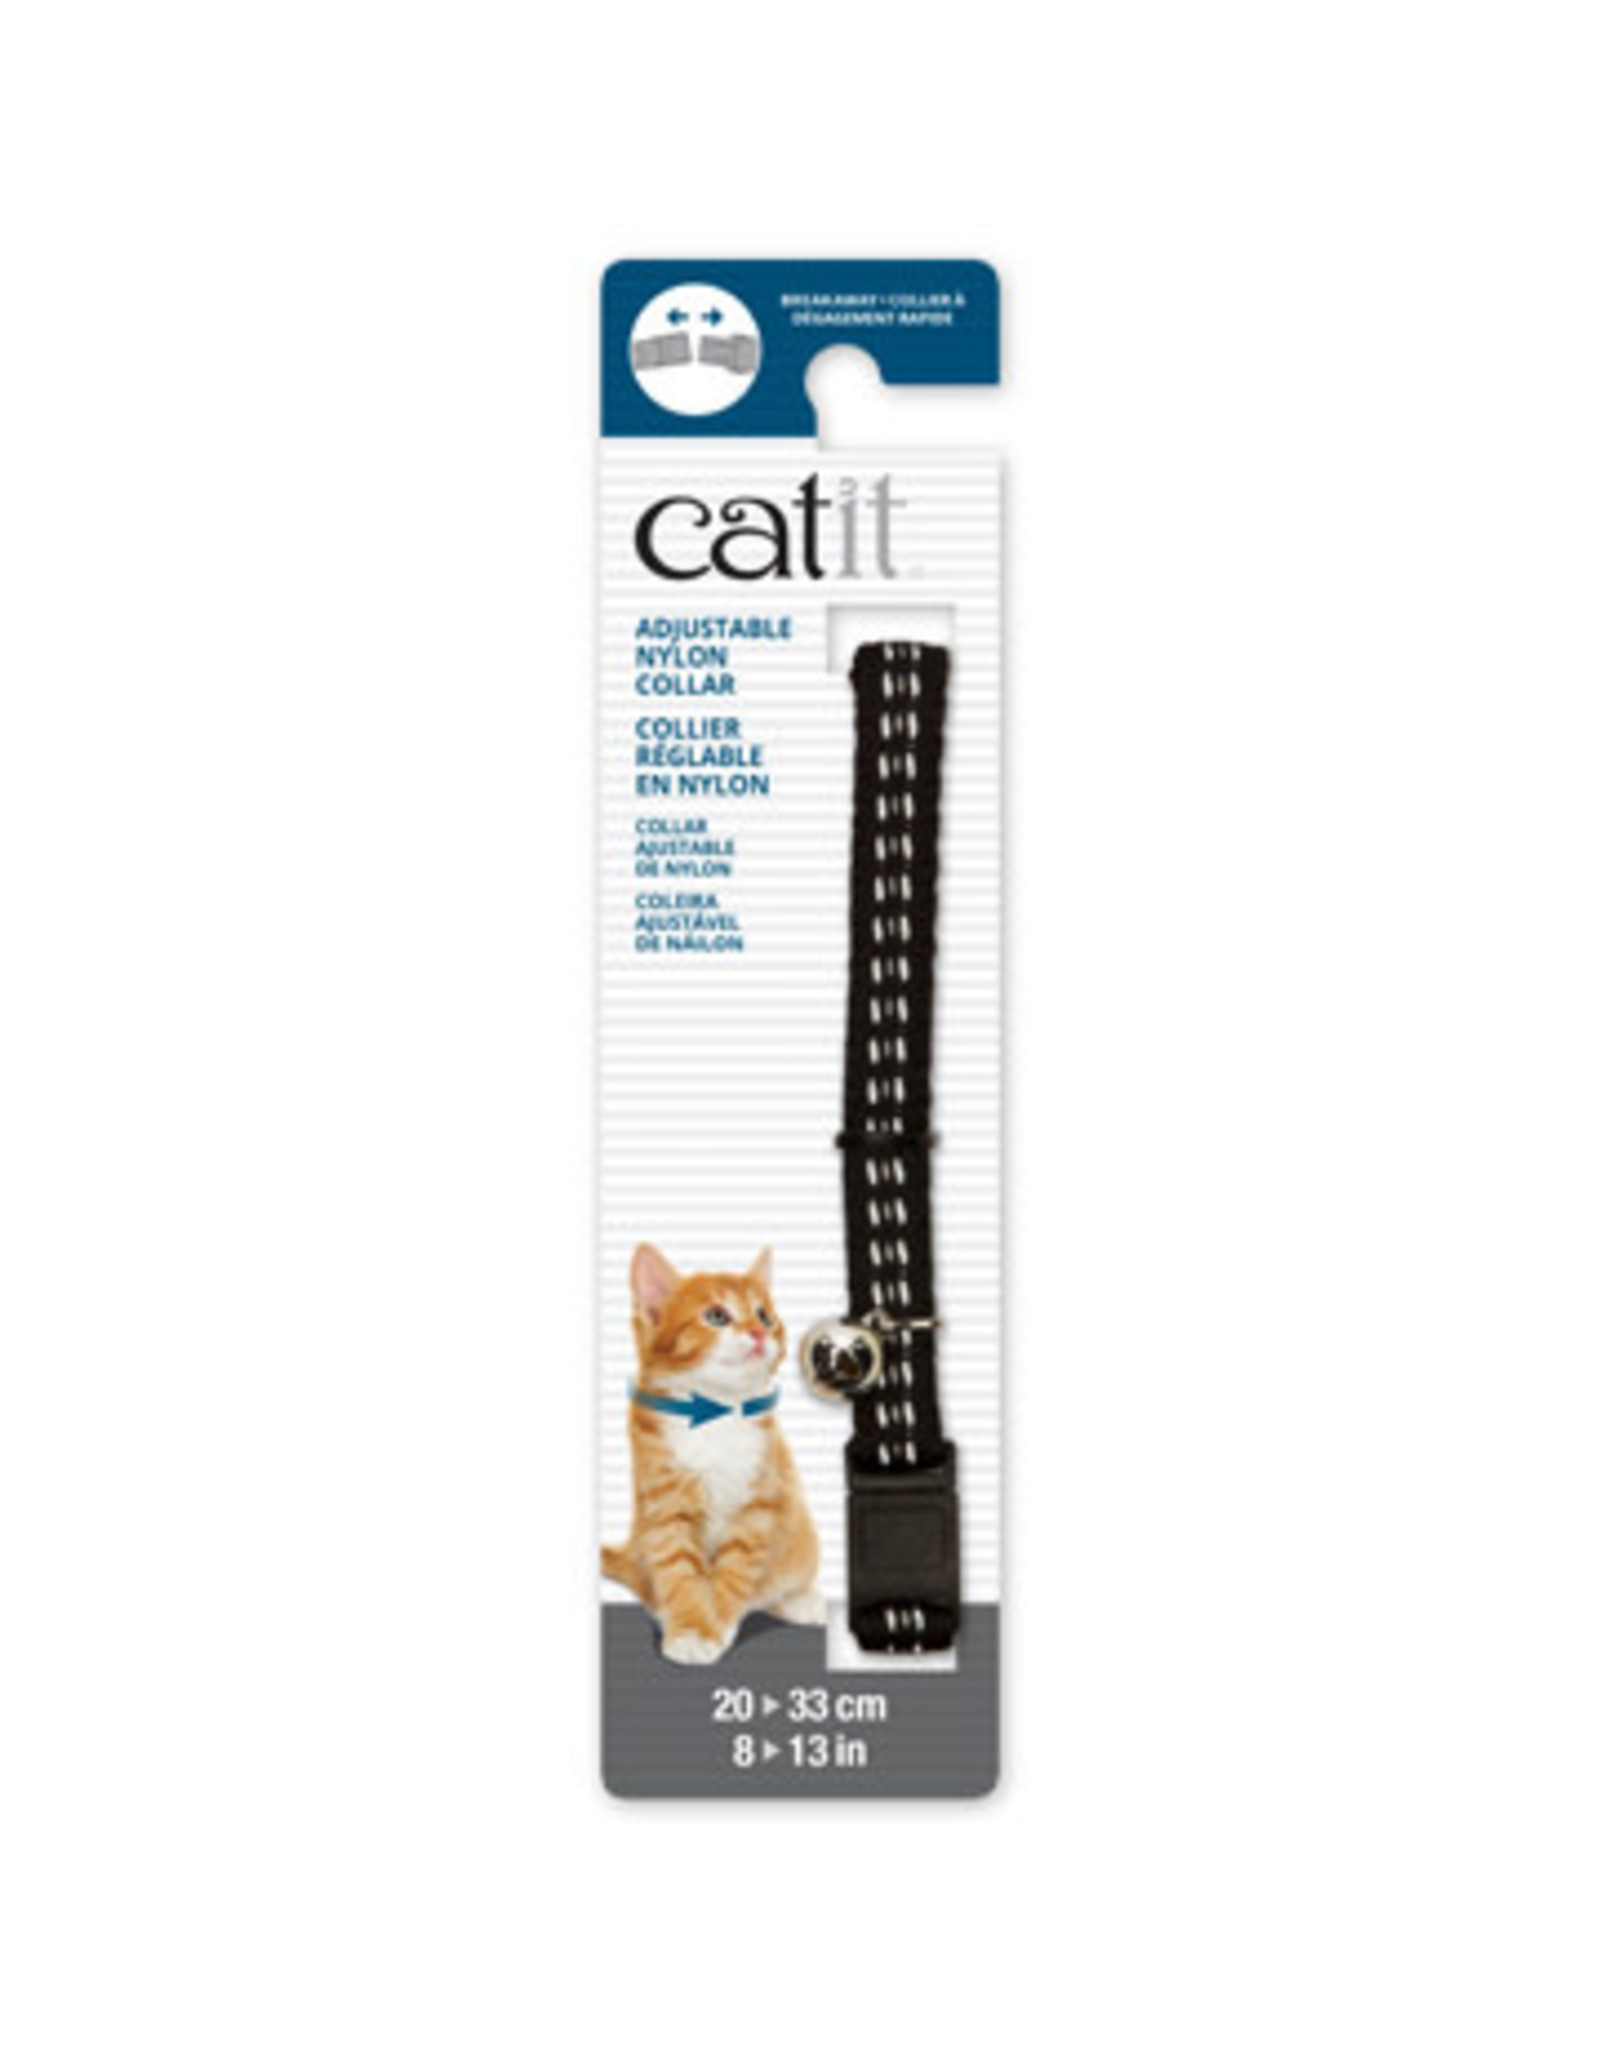 CatIt Adjustable Nylon Collar Reflective 20-33cm